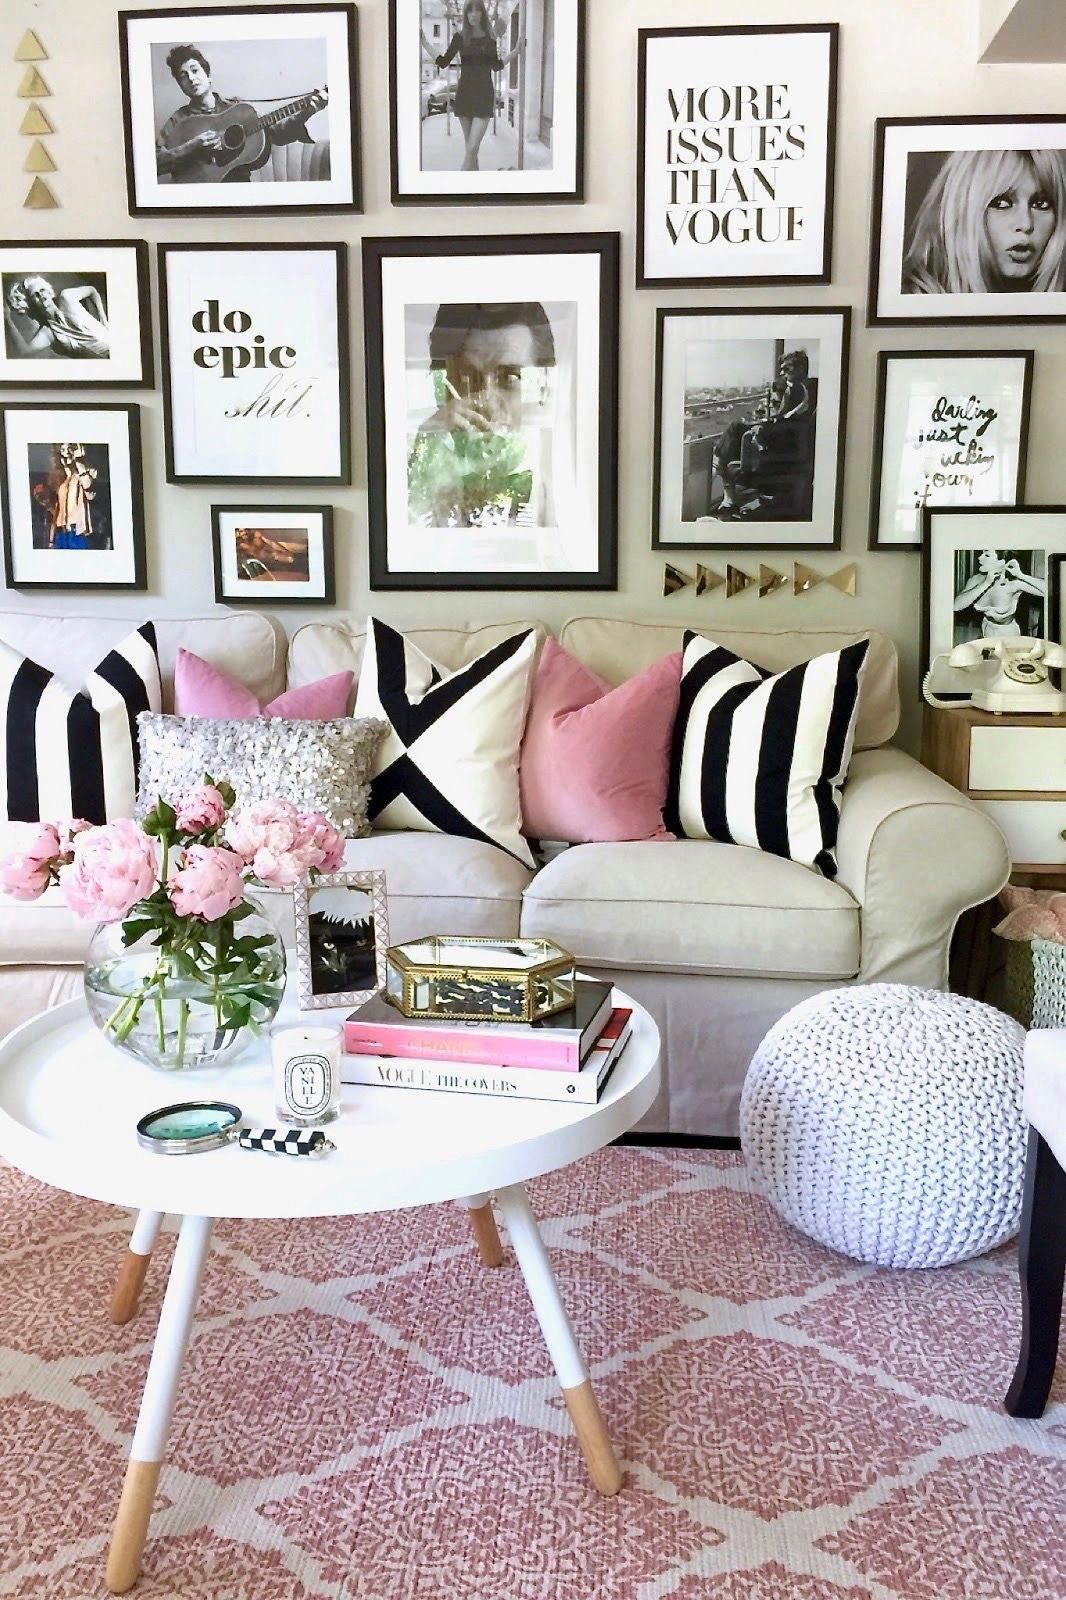 Pretty in pink an apartment refresh sticking to  simple black and white theme also  design packages home decor living room rh pinterest